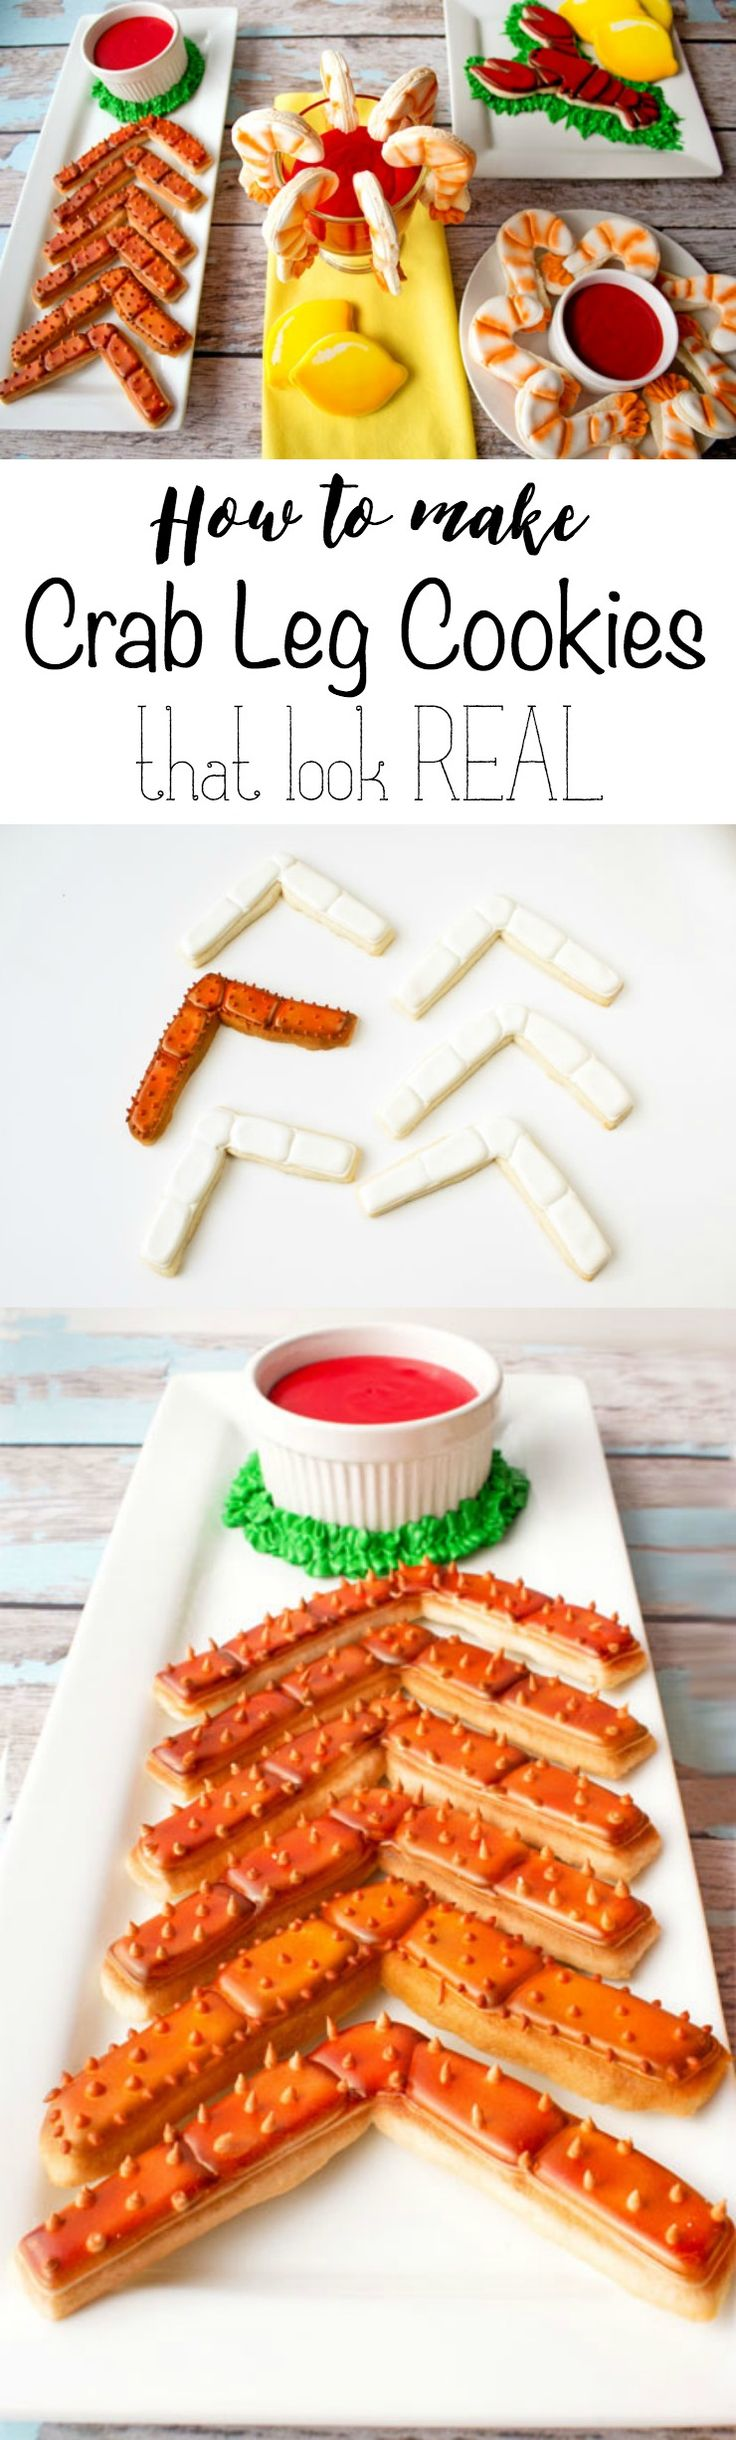 How to Airbrush Cookies that Look Like Real Crab Legs | The Bearfoot Baker